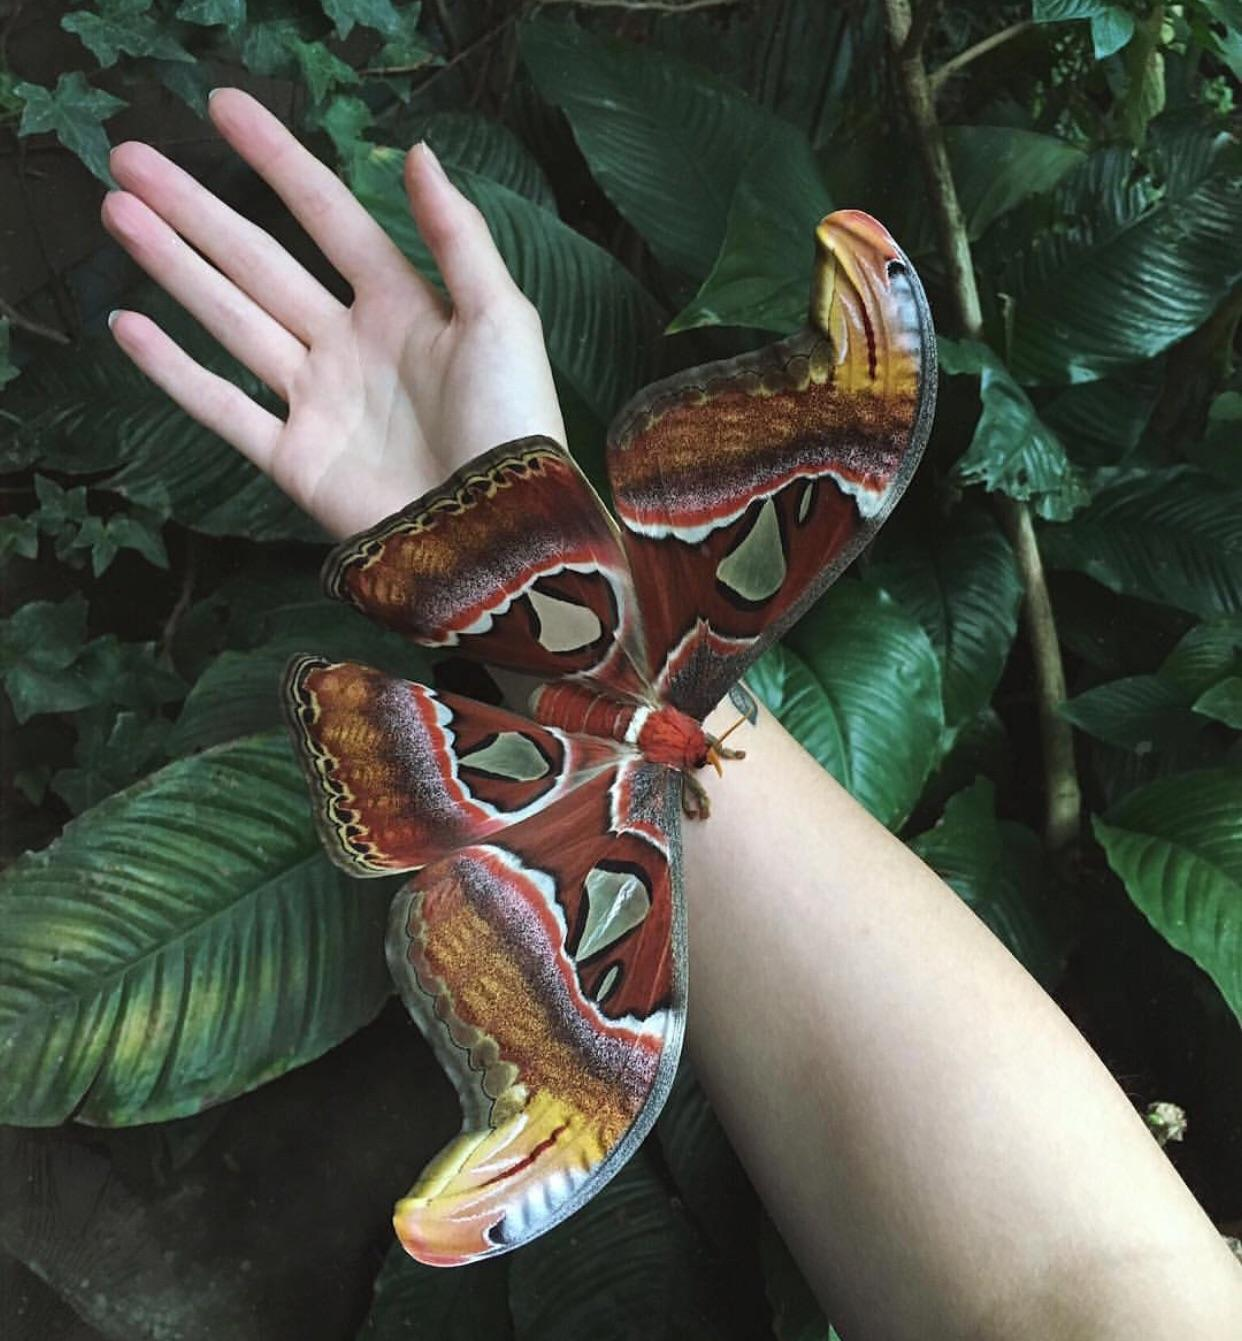 ATLAS MOTH PERCHED ON AN ADULT SIZE ARM!